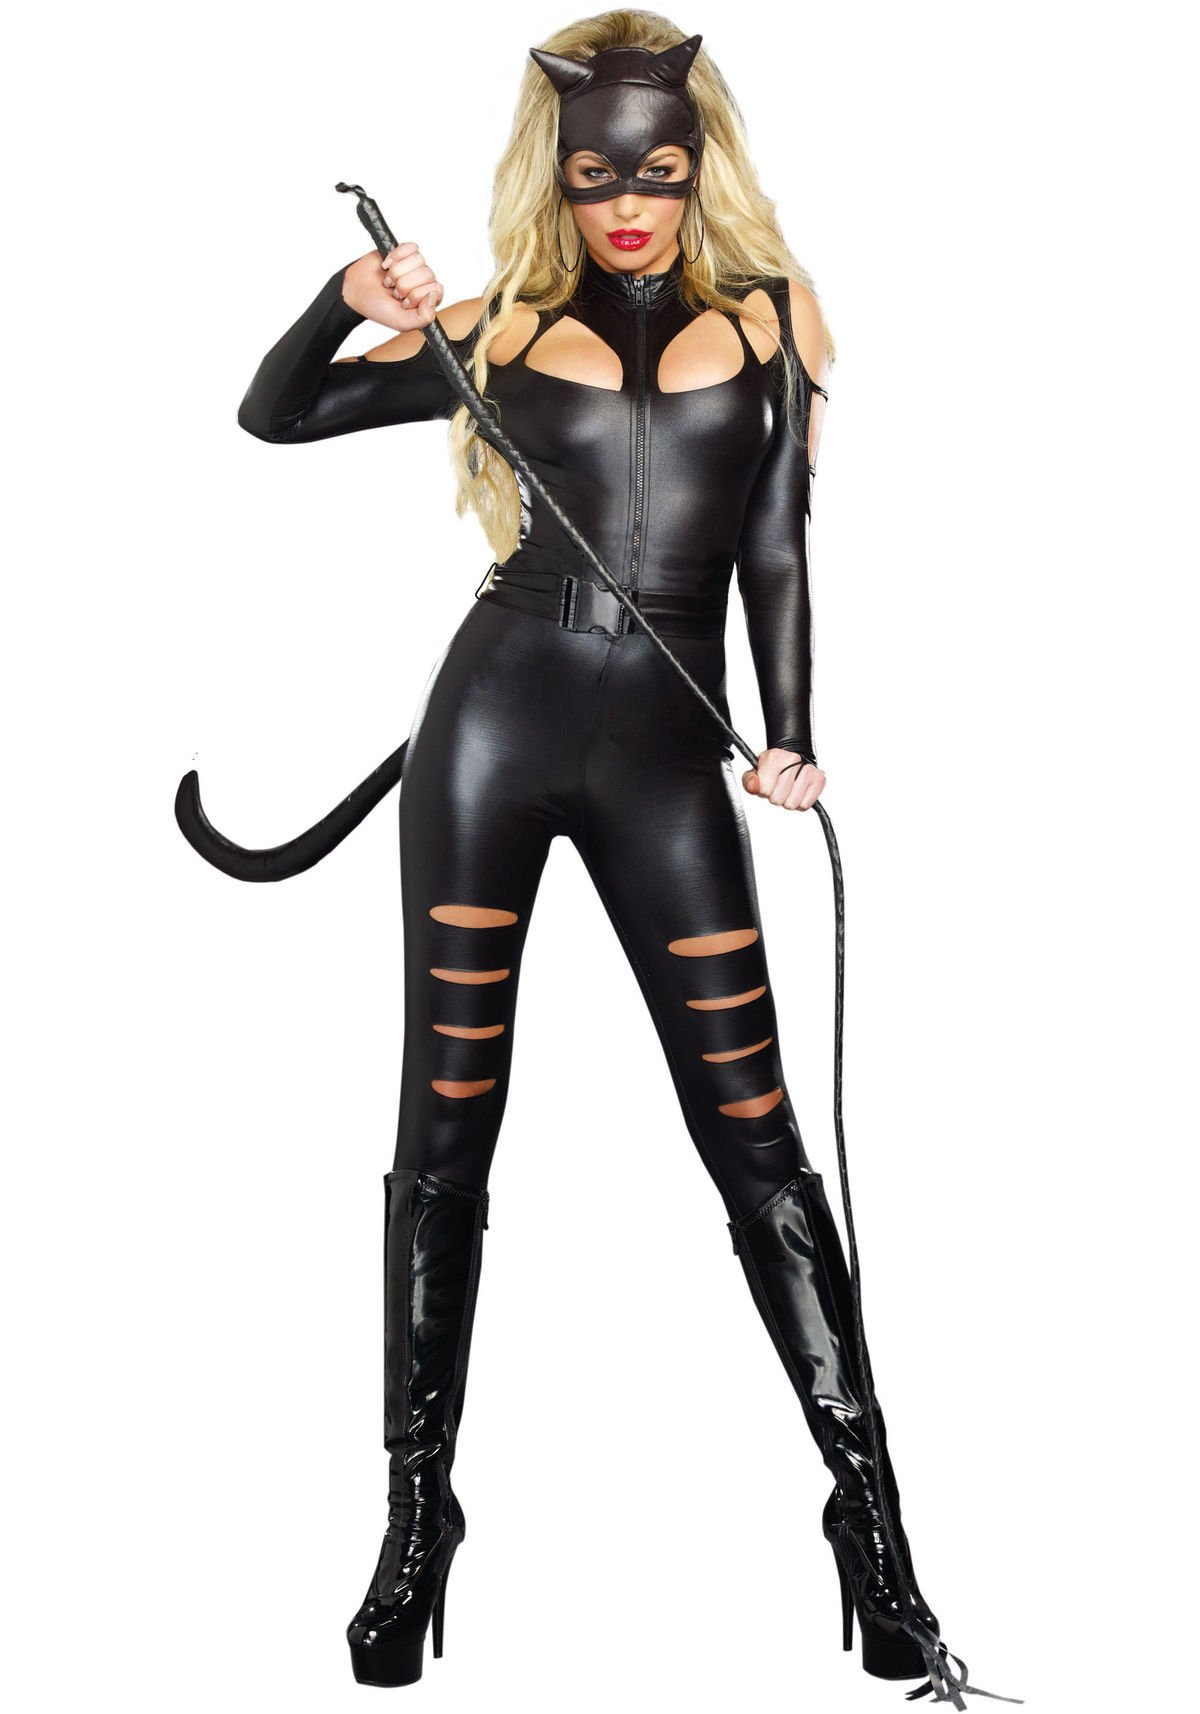 Dreamgirl Women's Catwoman Costume, Black, X-Large